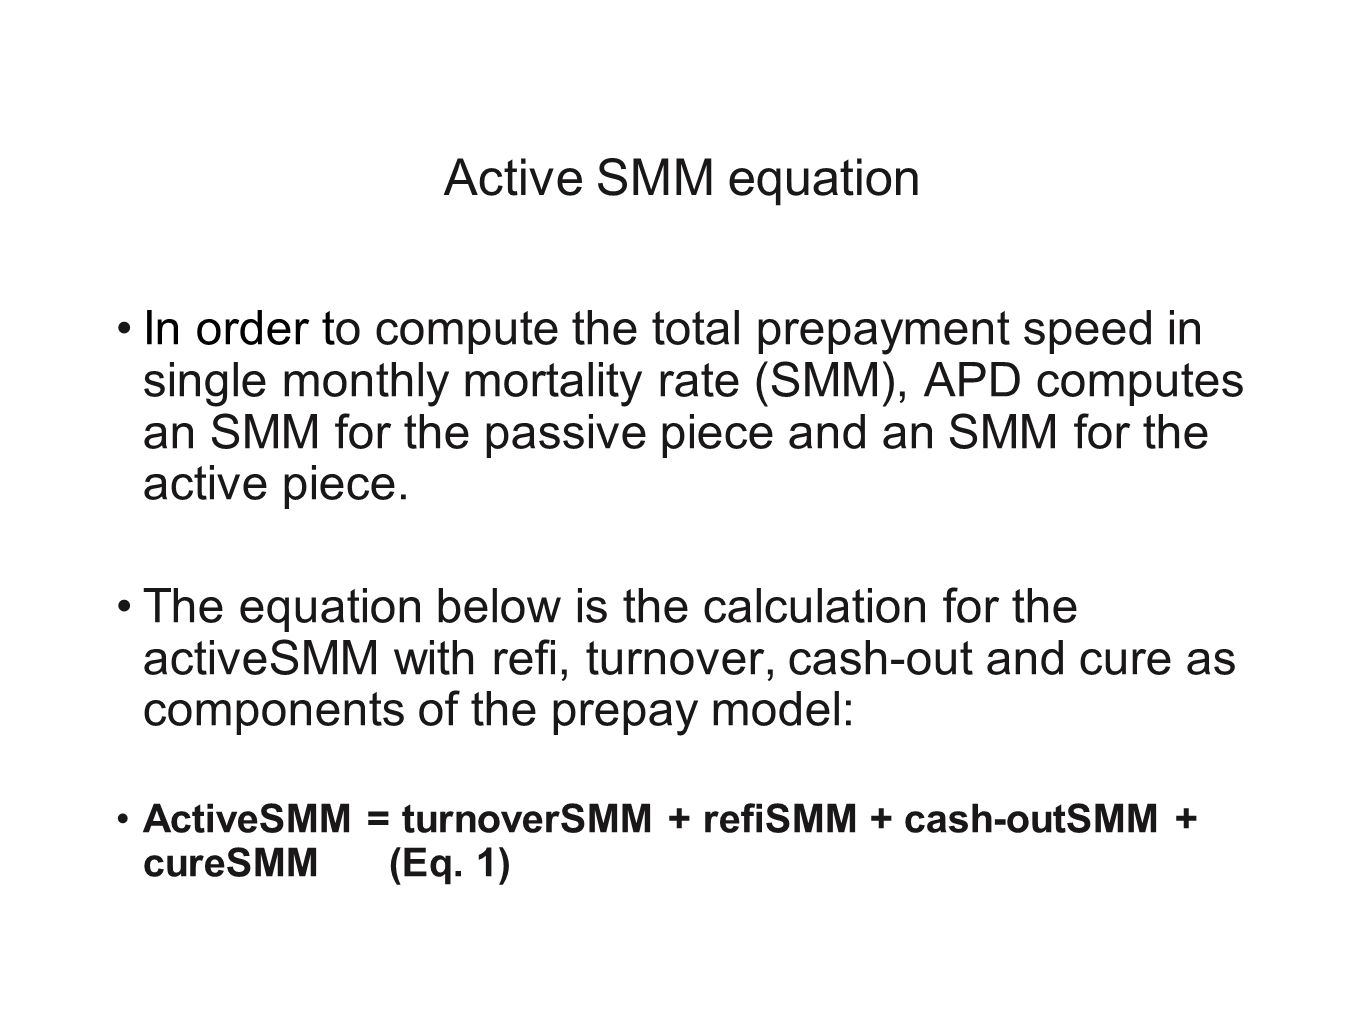 Active SMM equation In order to compute the total prepayment speed in single monthly mortality rate (SMM), APD computes an SMM for the passive piece and an SMM for the active piece.